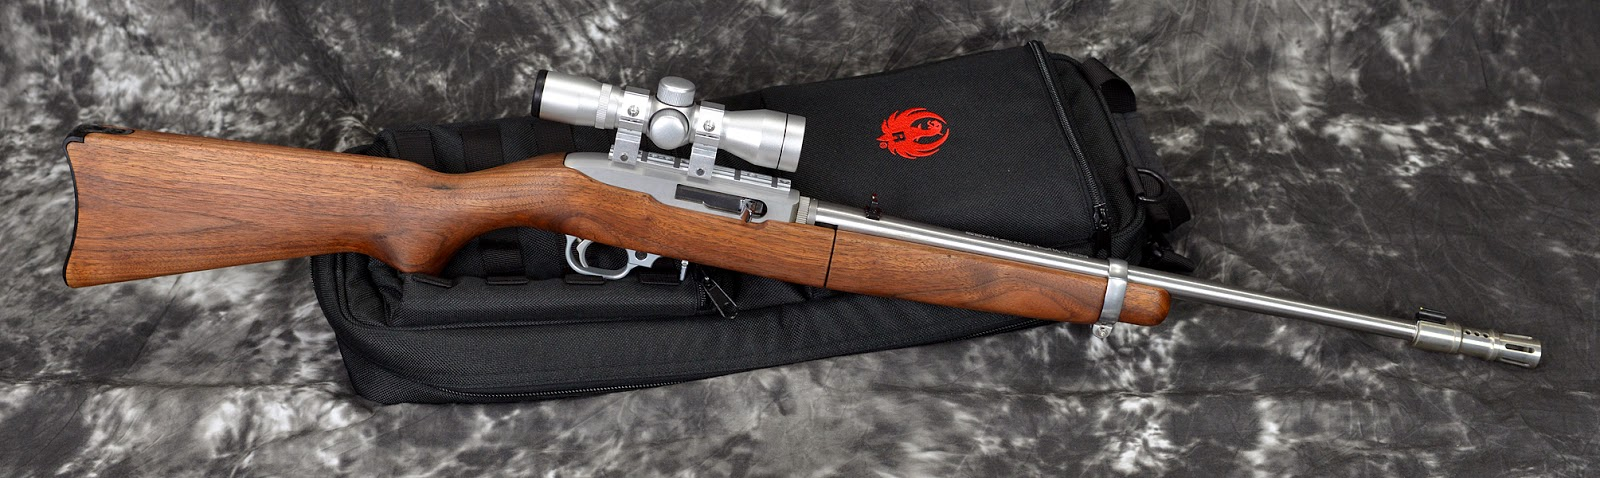 Ruger 10/22 Takedown Wood Stocks: Ruger® 10/22 Takedown Solid Walnut Stock Conversion